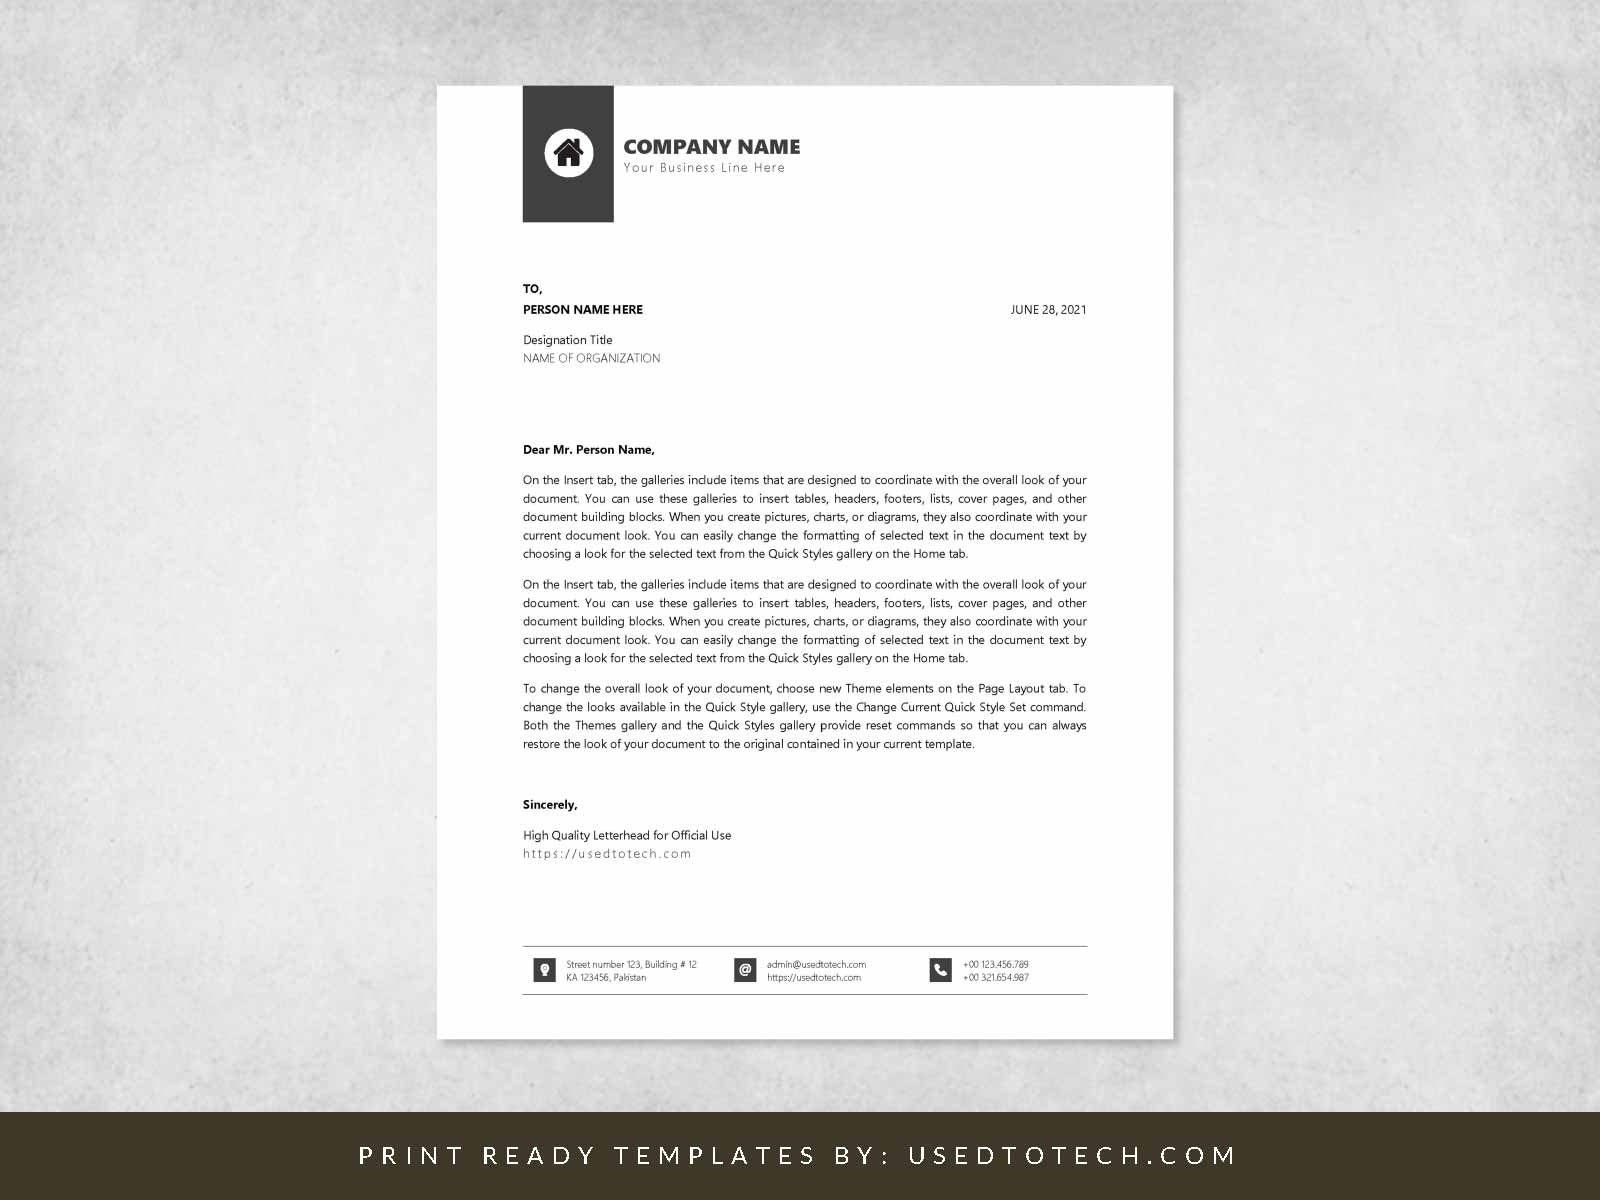 High quality official letterhead for Word